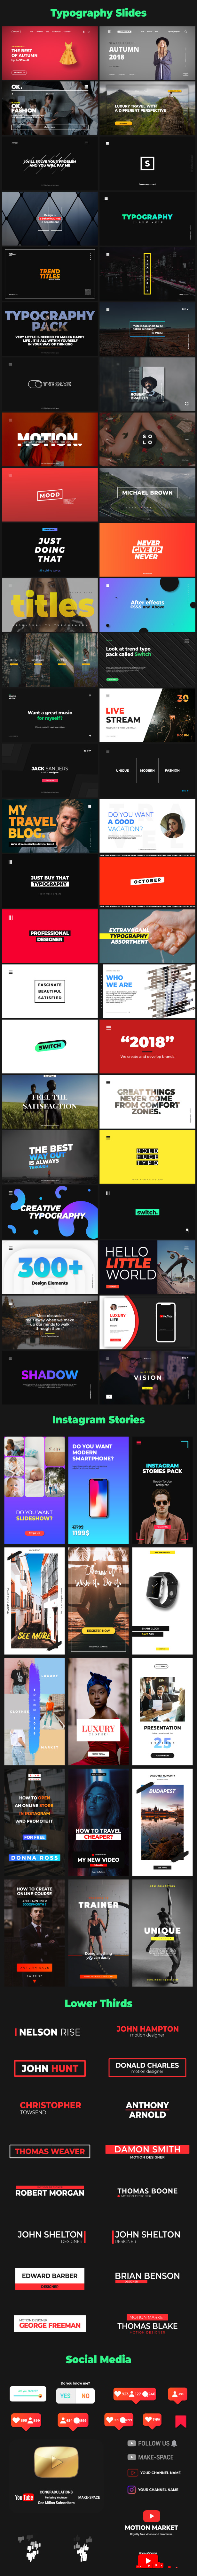 Typography Design Pack - 4